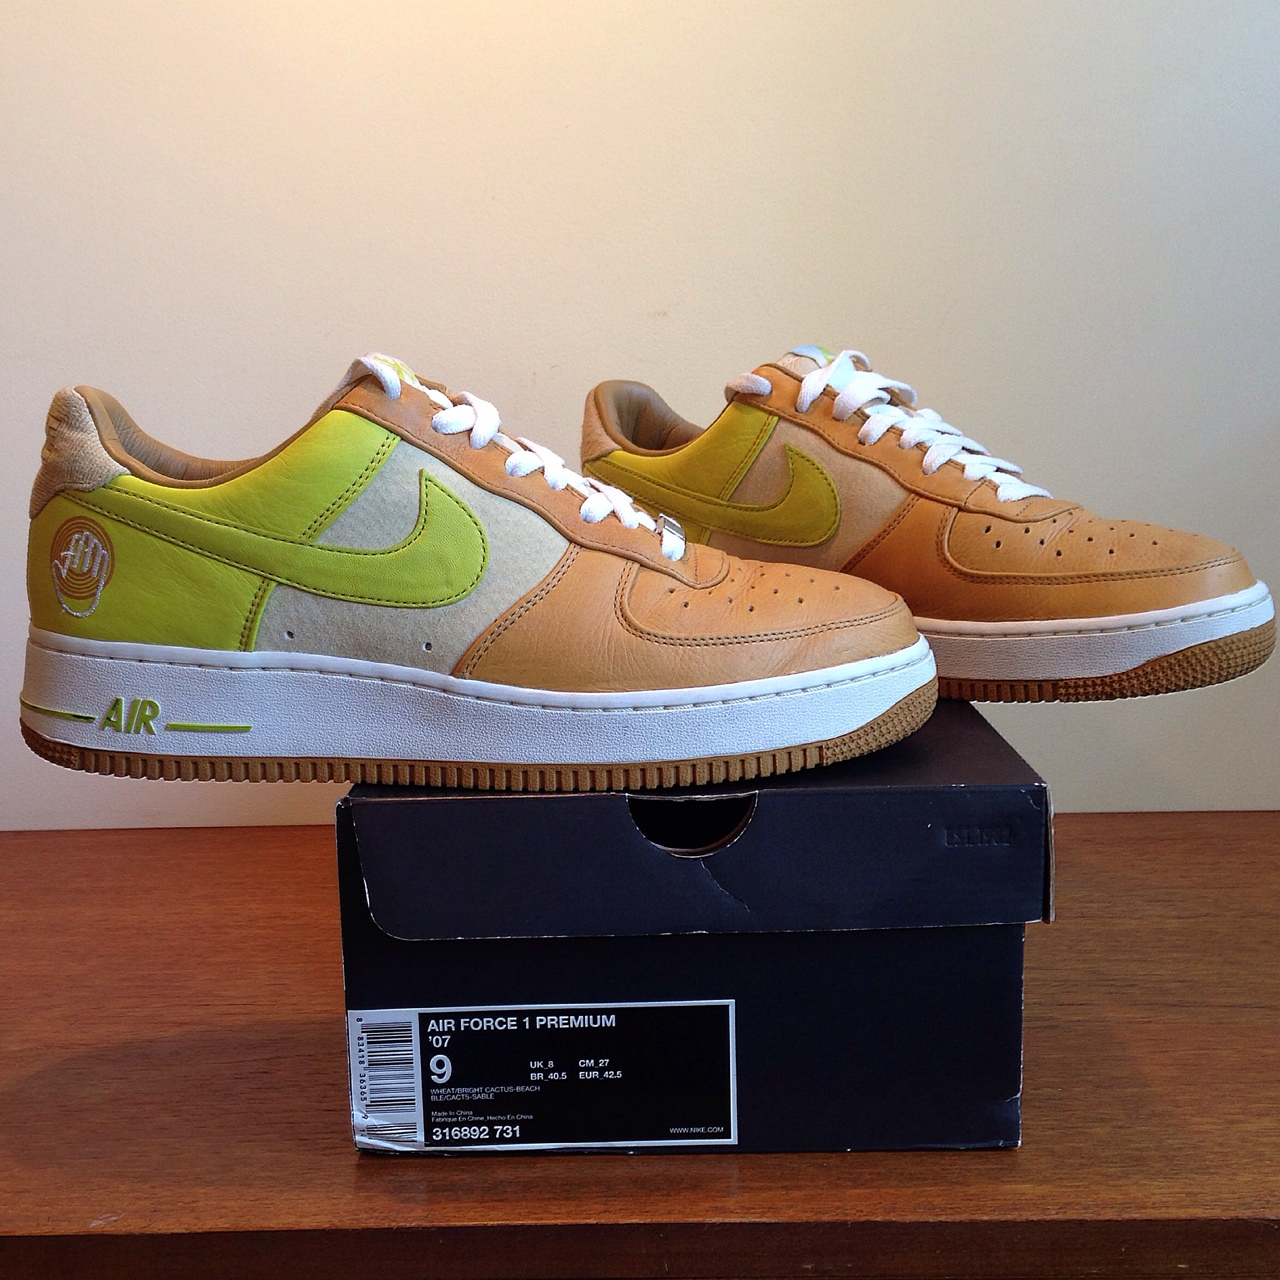 Nike Air Force one premium Bobito from 2007 released